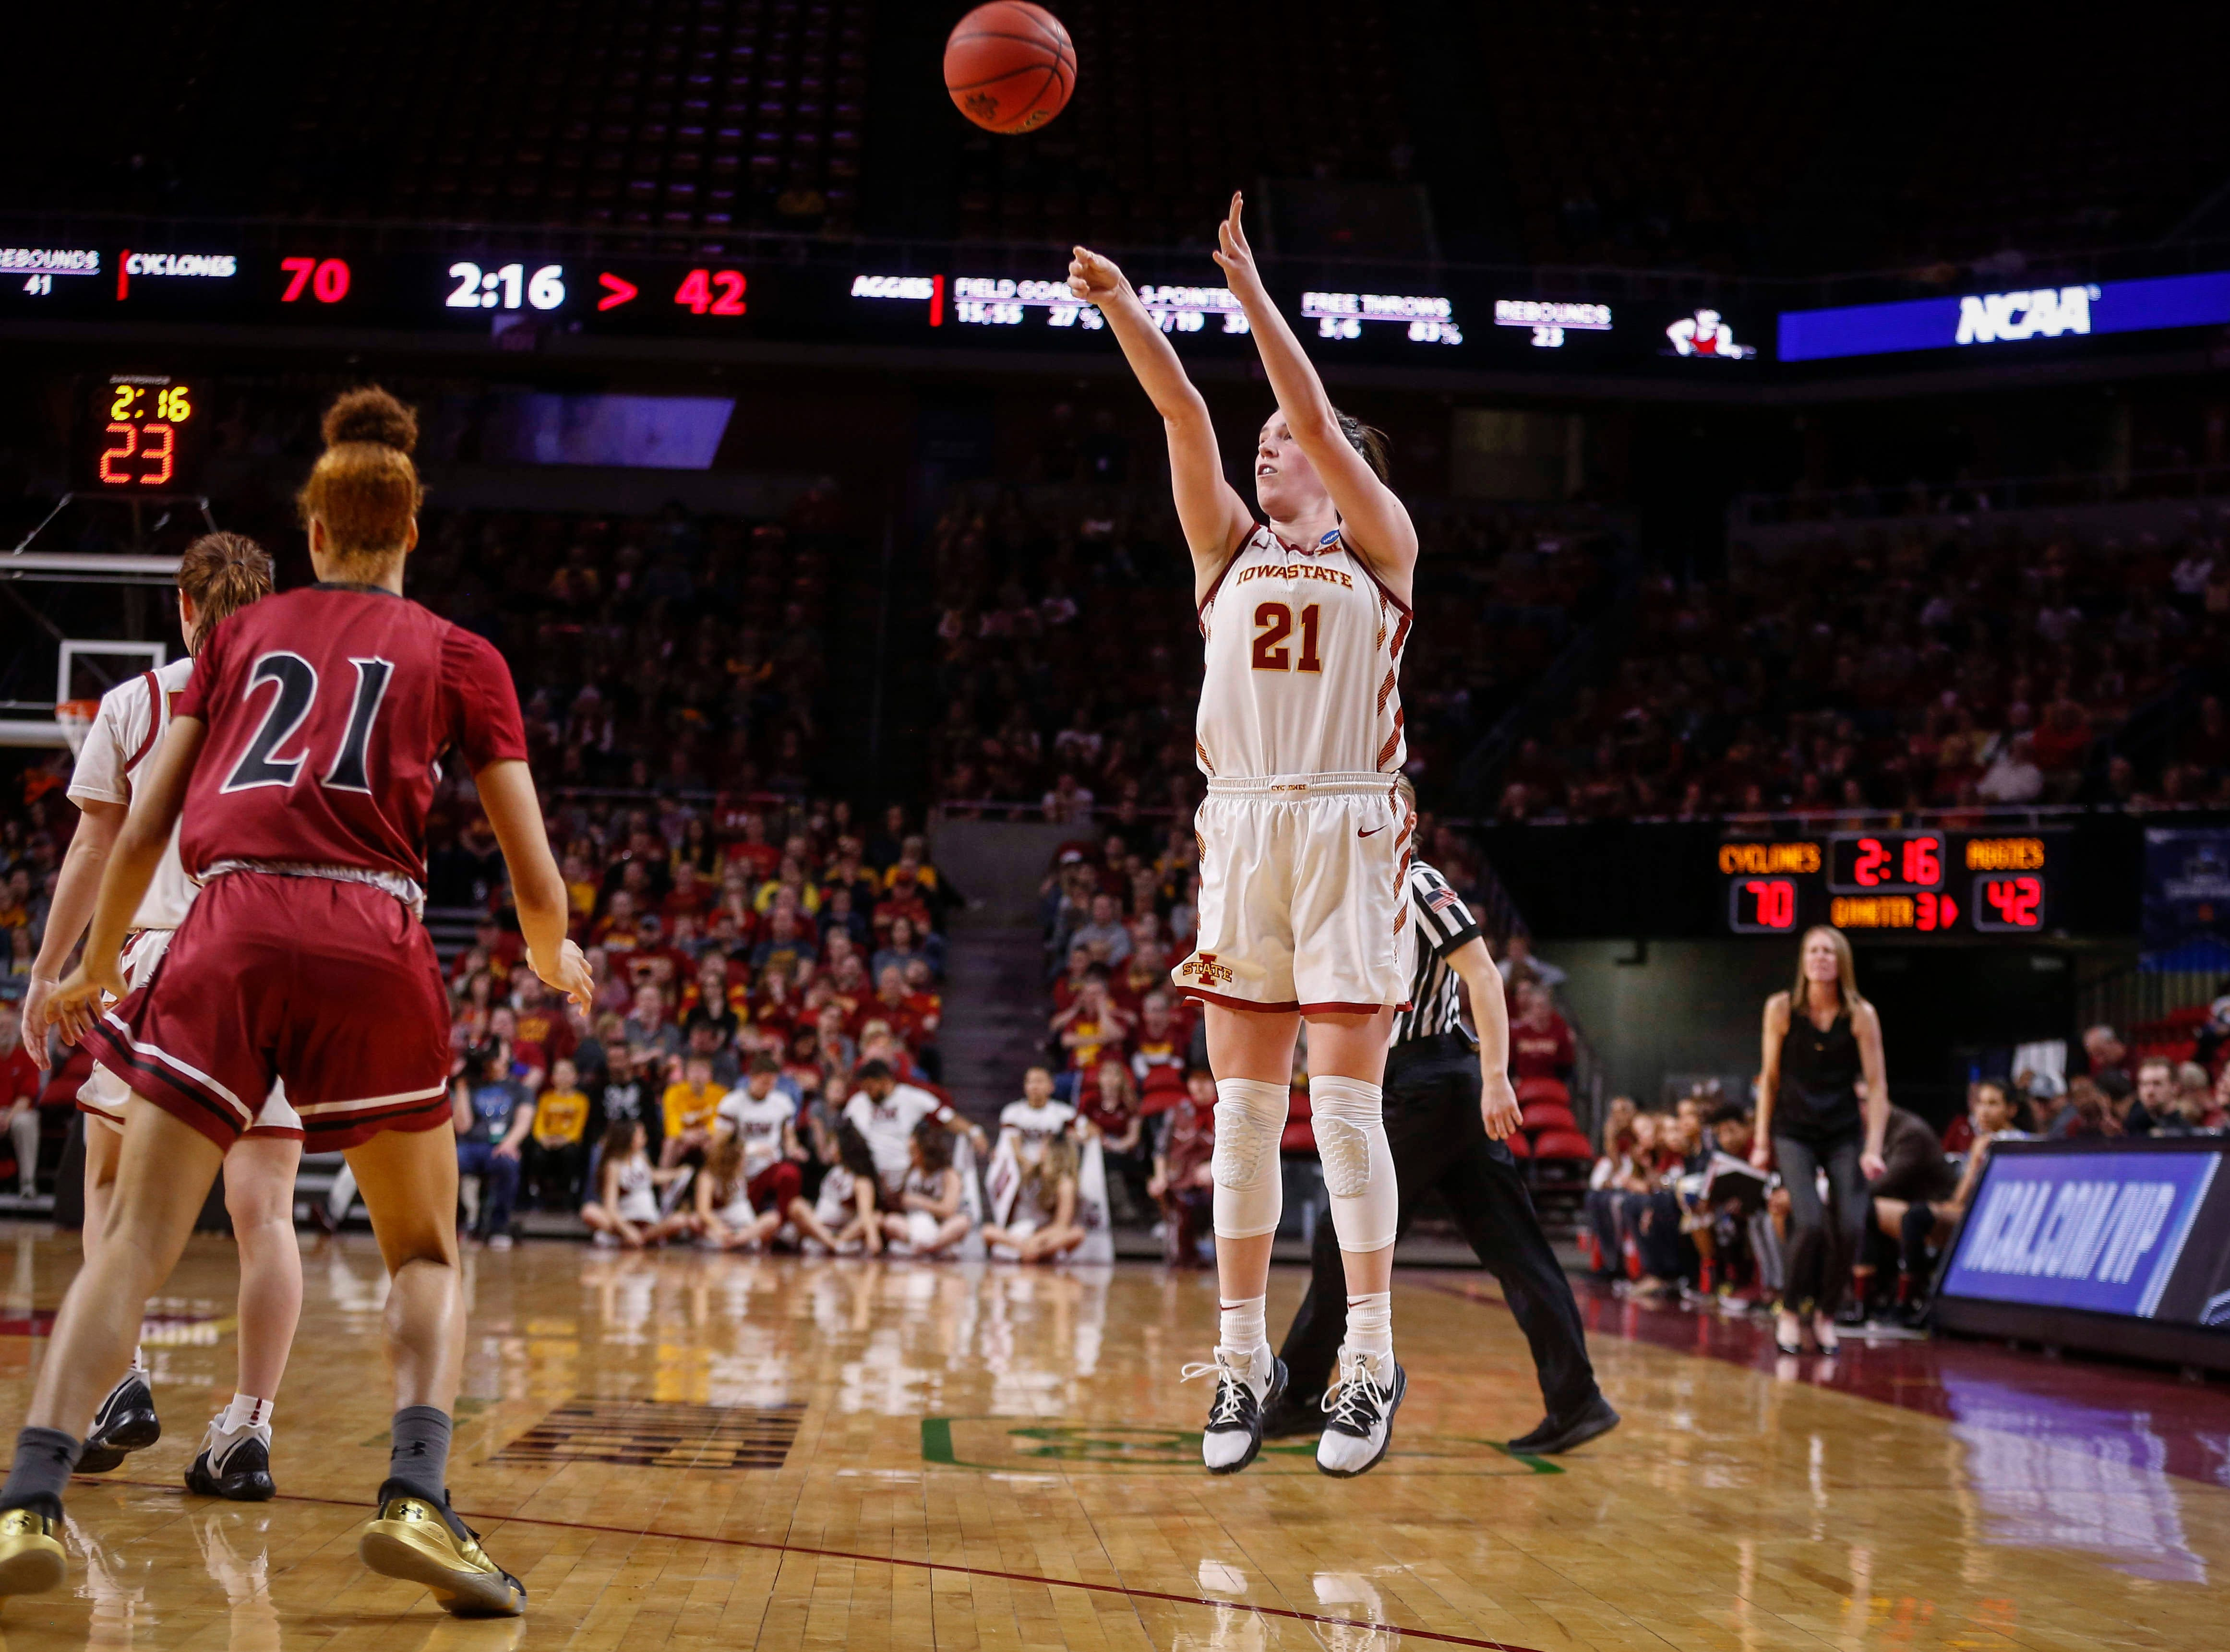 Iowa State senior Bridget Carleton launches a shot from the three point line against New Mexico State on Saturday, March 23, 2019, at Hilton Coliseum in Ames.